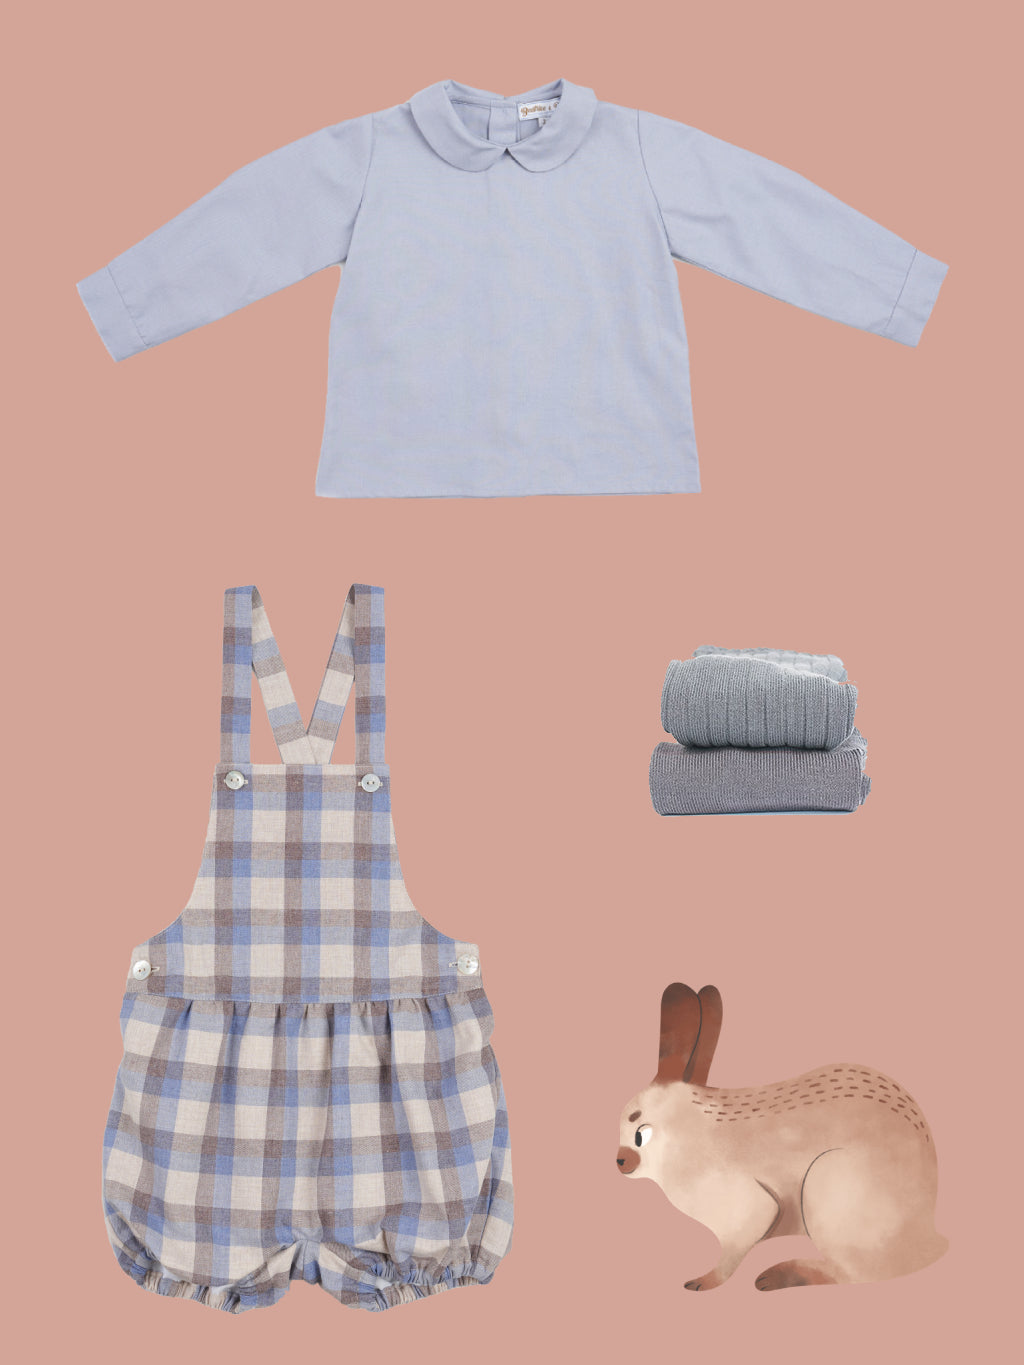 autumn baby boy outfit in grey and blue